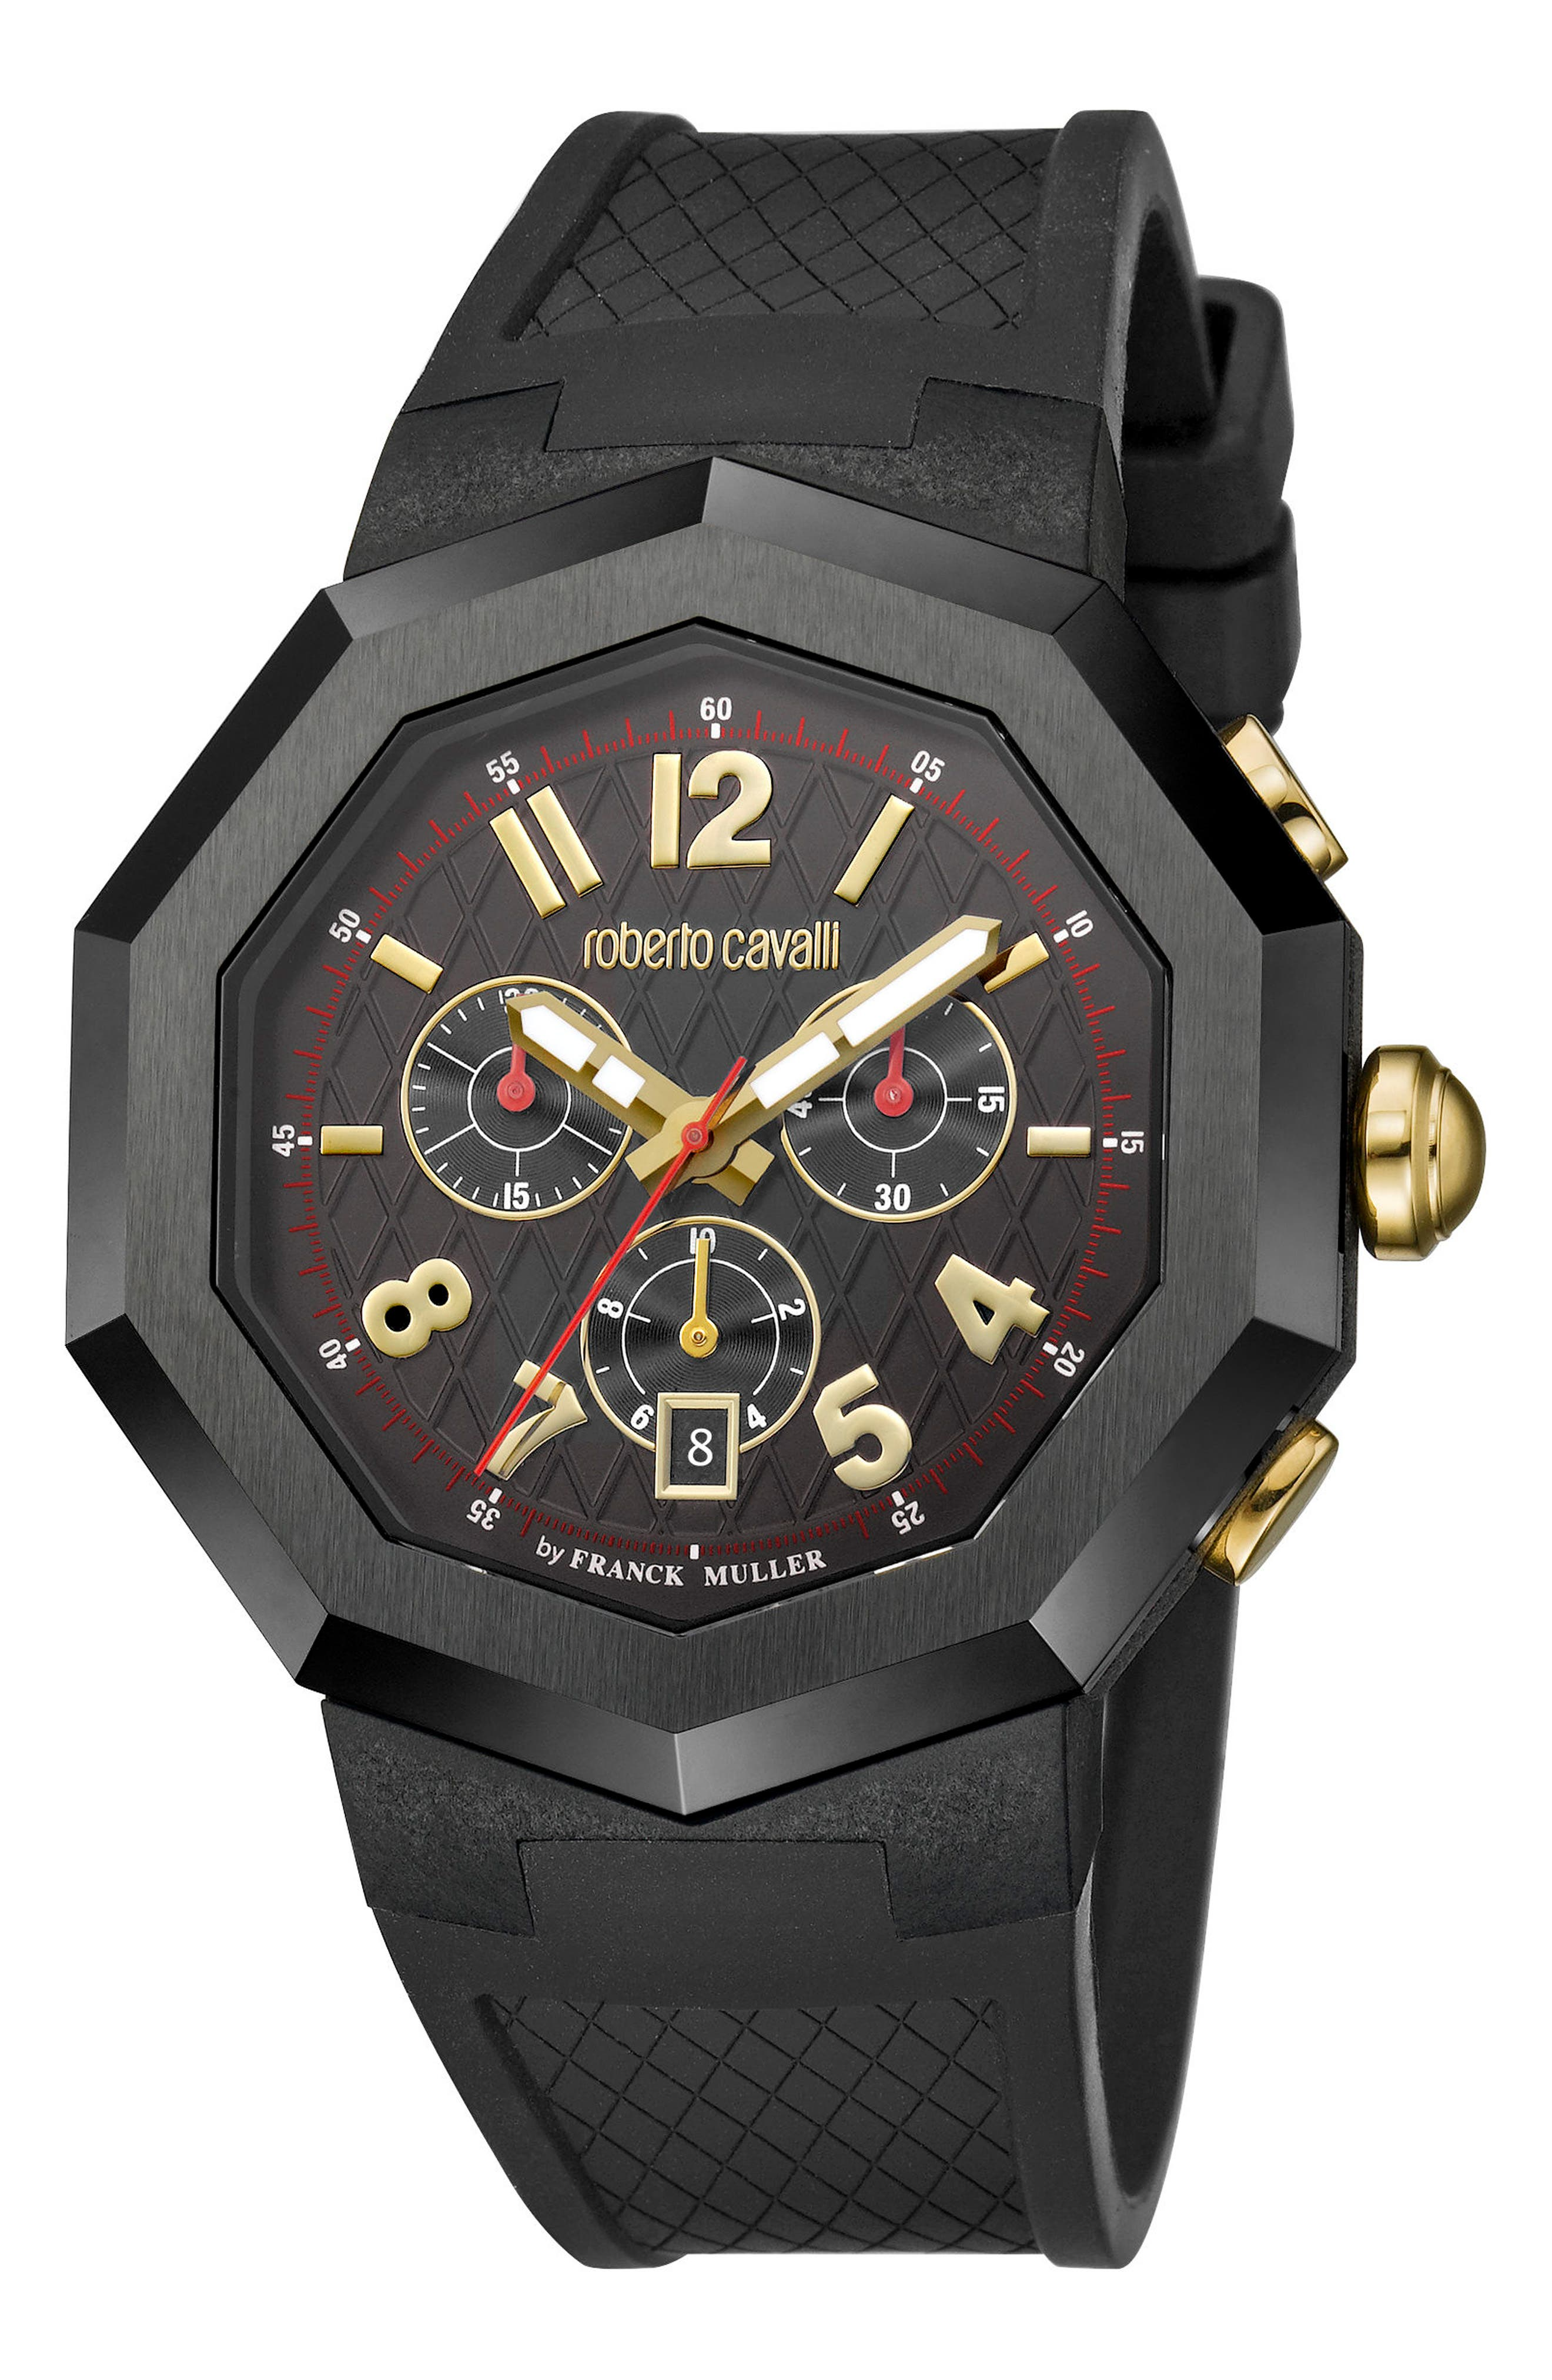 Main Image - Roberto Cavalli by Franck Muller Chronograph Rubber Strap Watch, 45mm